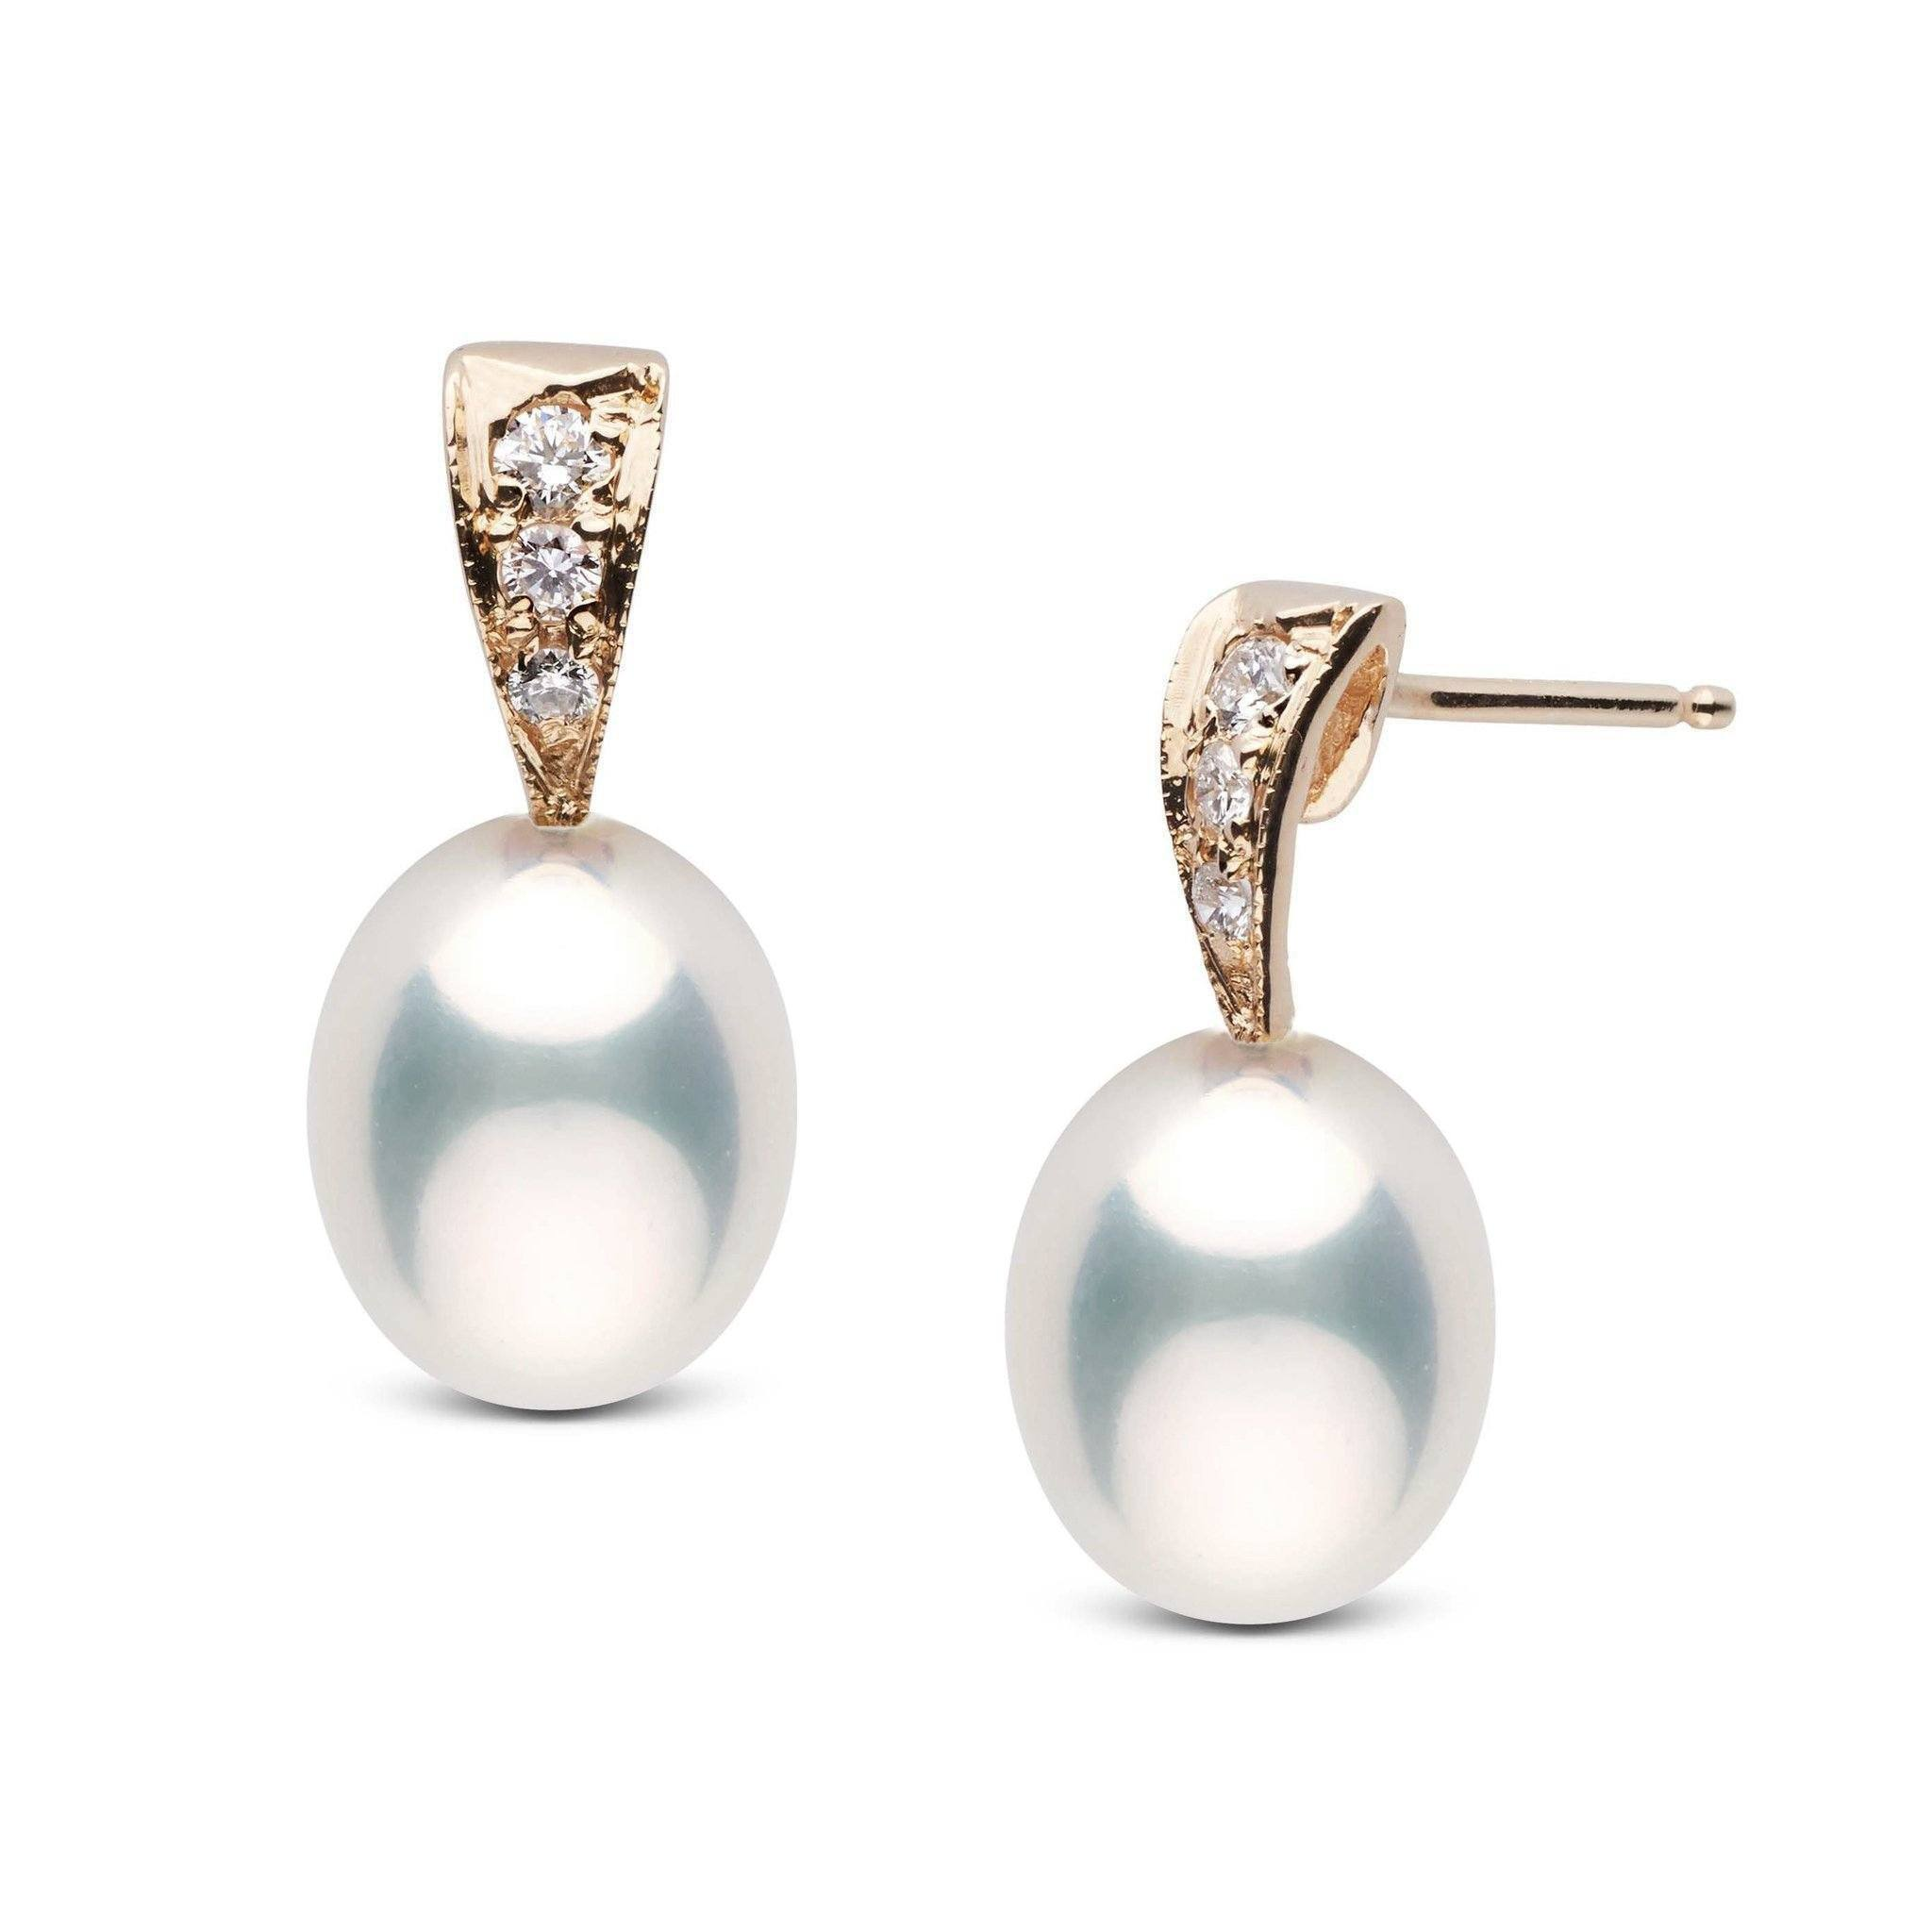 Desire Collection White Freshwater Drop 9.0-10.0 mm Pearl and Diamond Earrings